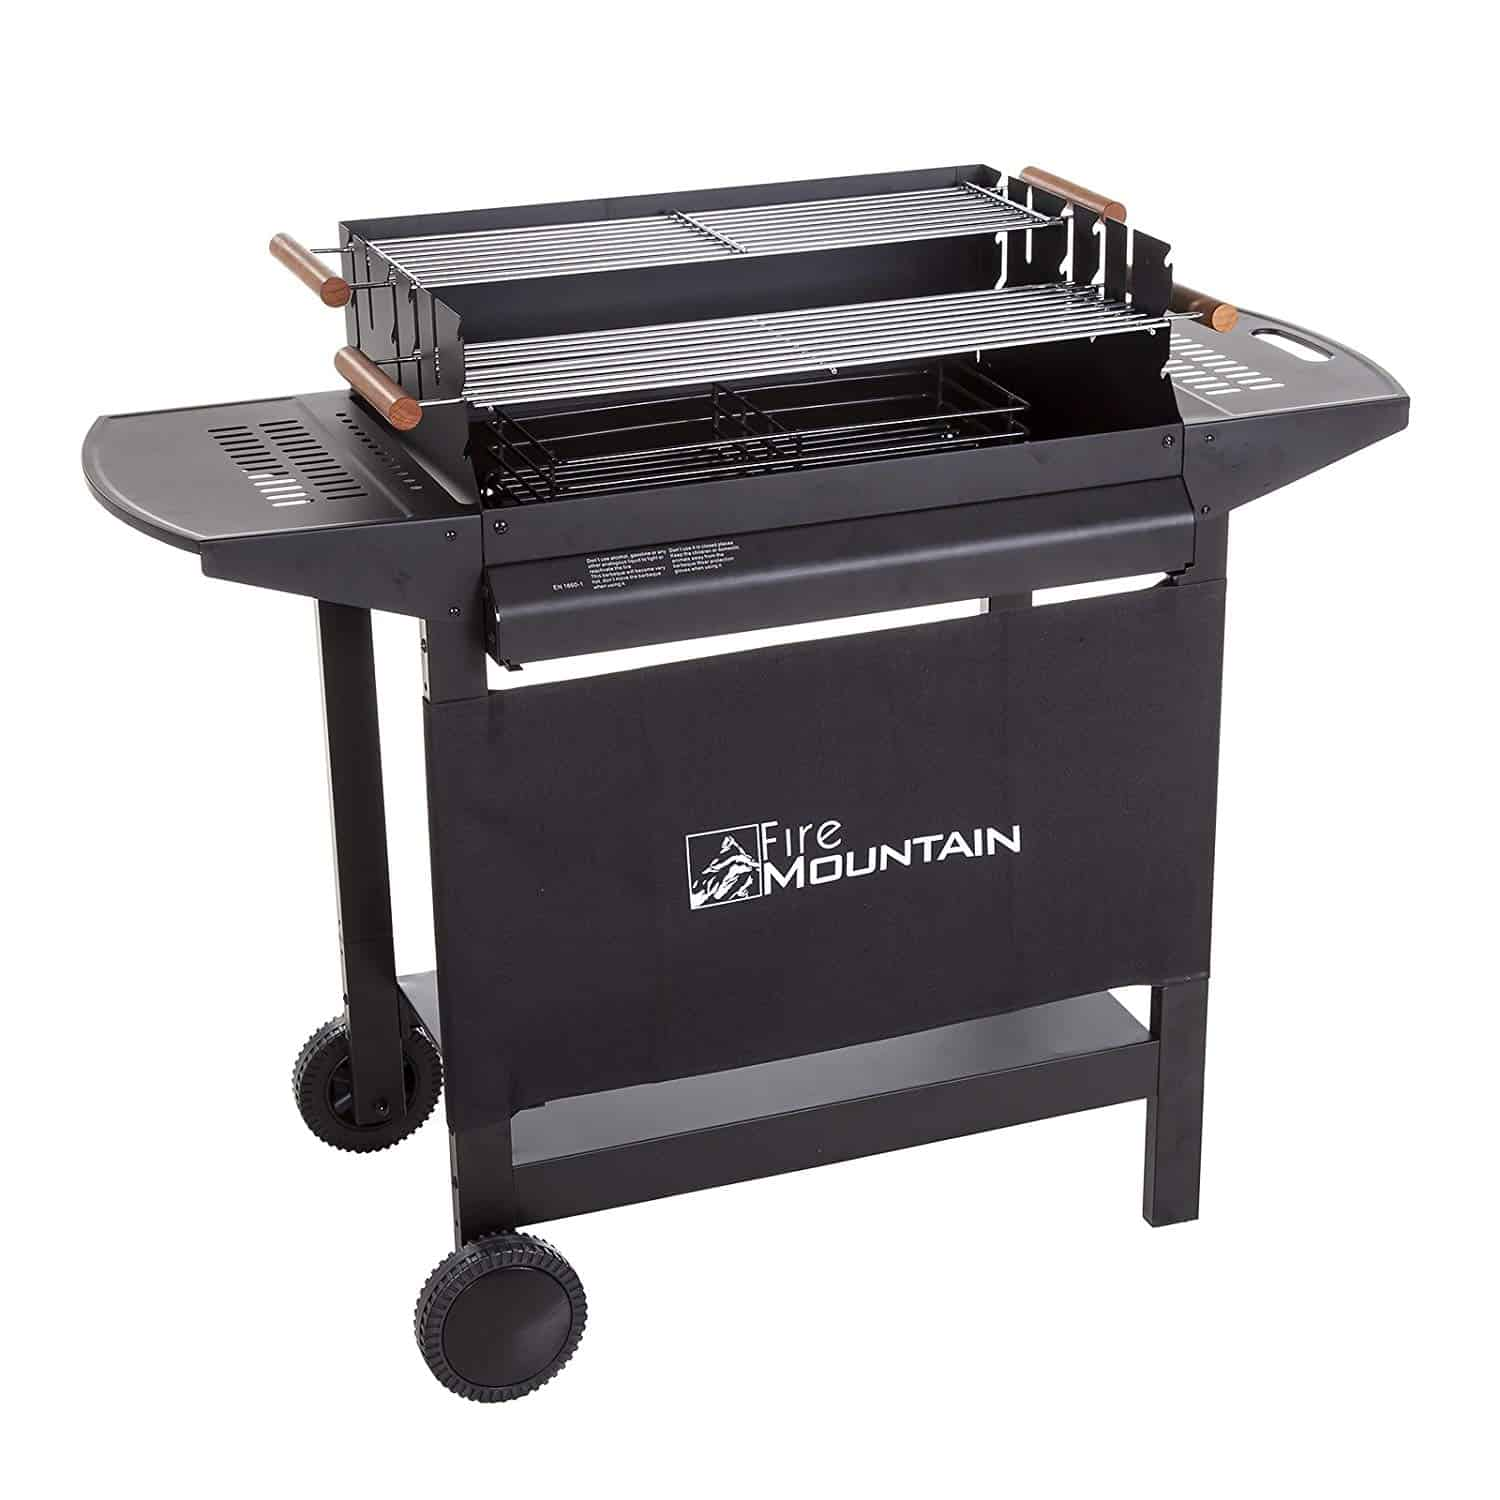 14 Best Charcoal BBQ UK - For Epic Barbecues Summer 2019!